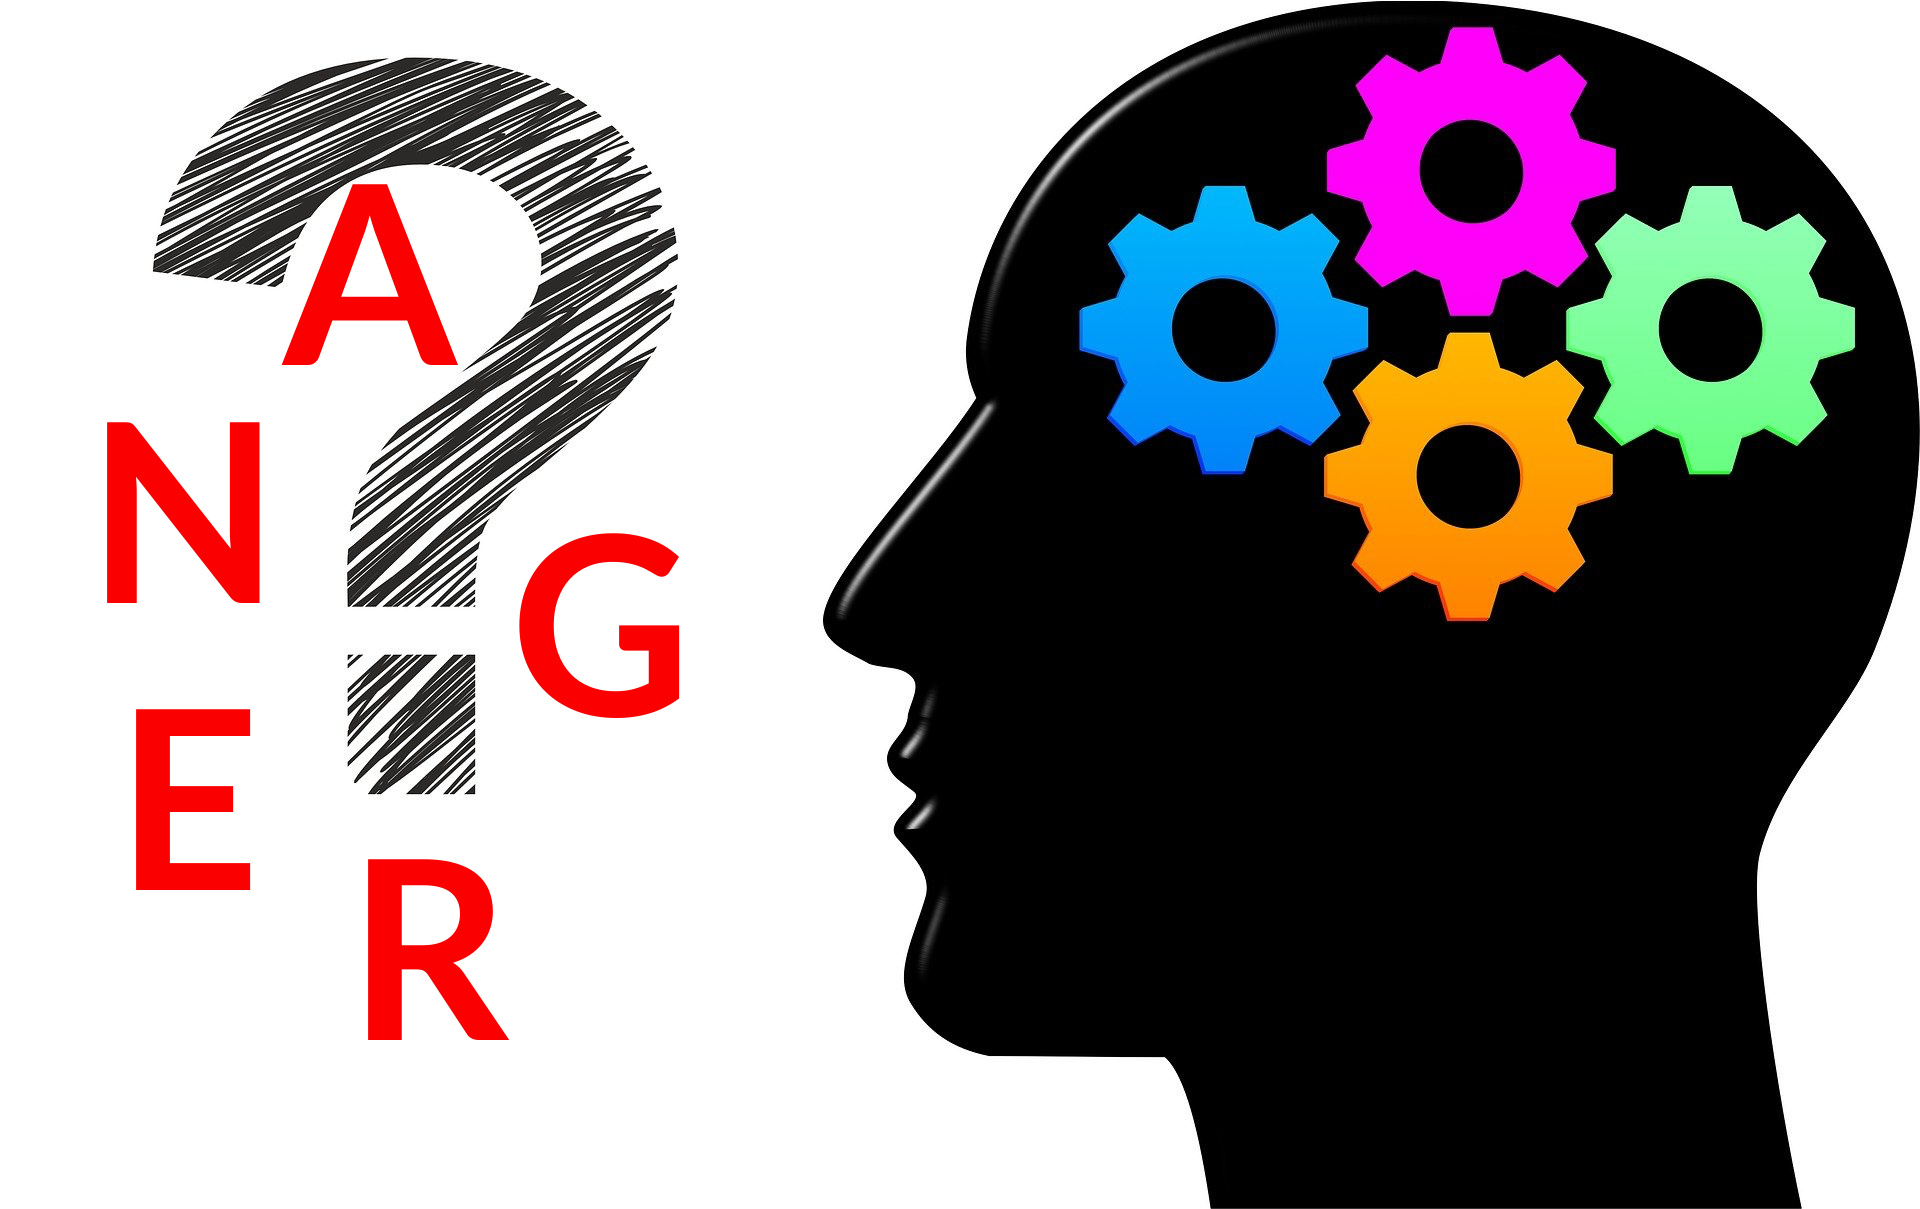 How to Use Your Anger Creatively and Constructively